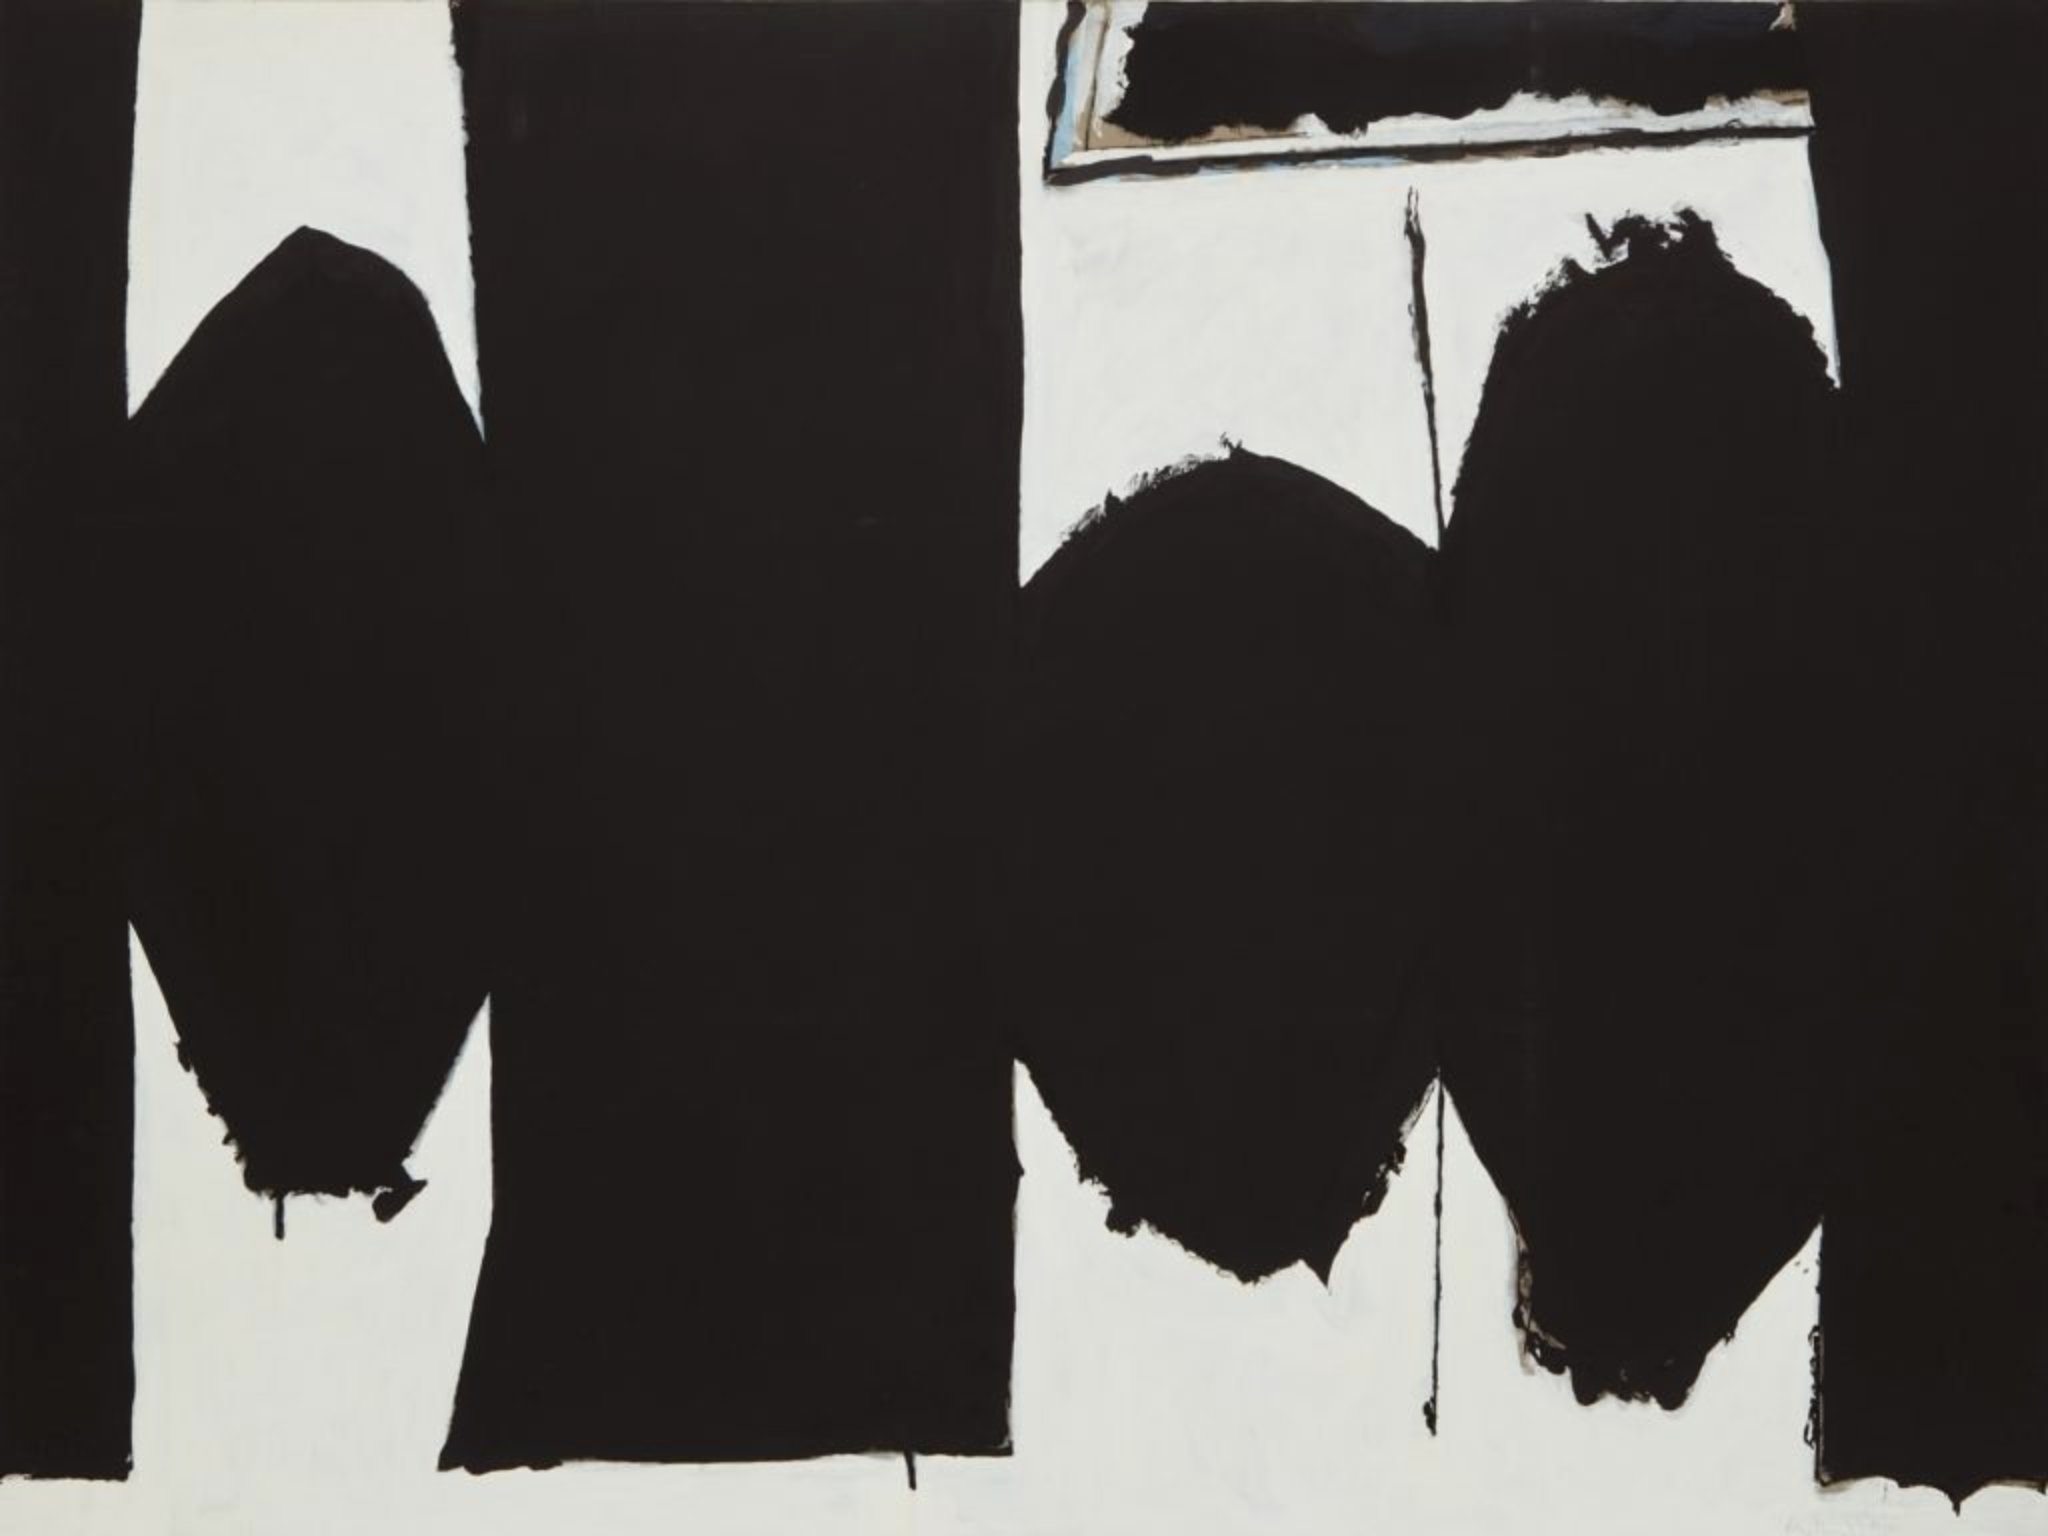 Robert Motherwell, At Five in the Afternoon (1971), foto courtesy Phillips